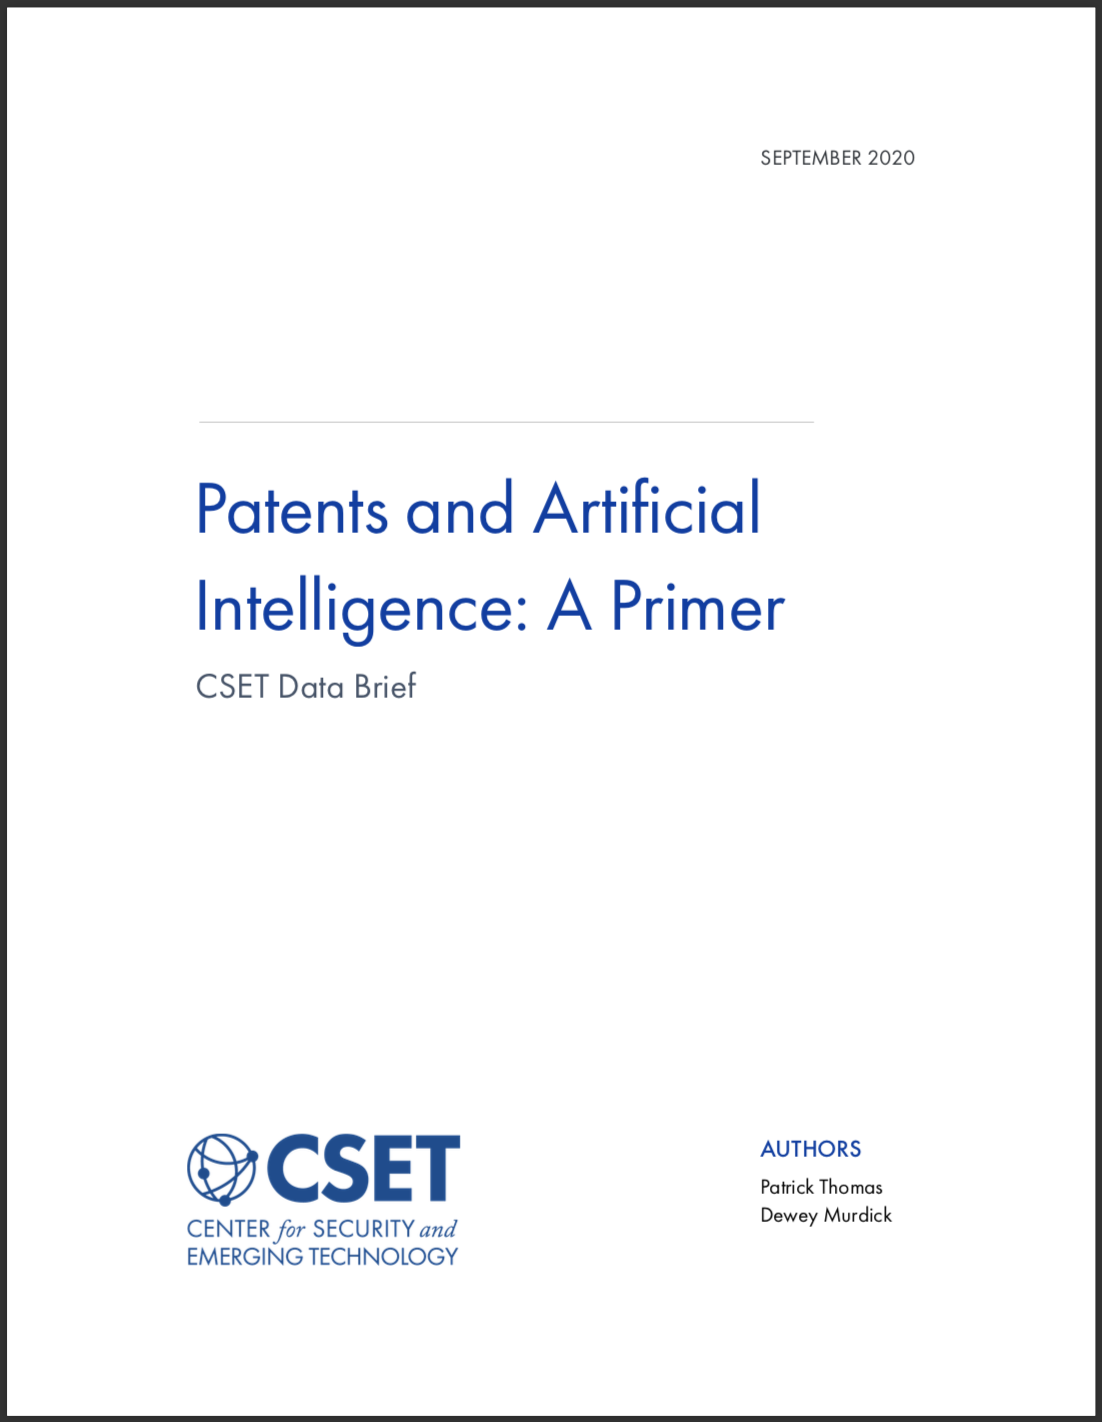 Patents and AI Brief Cover